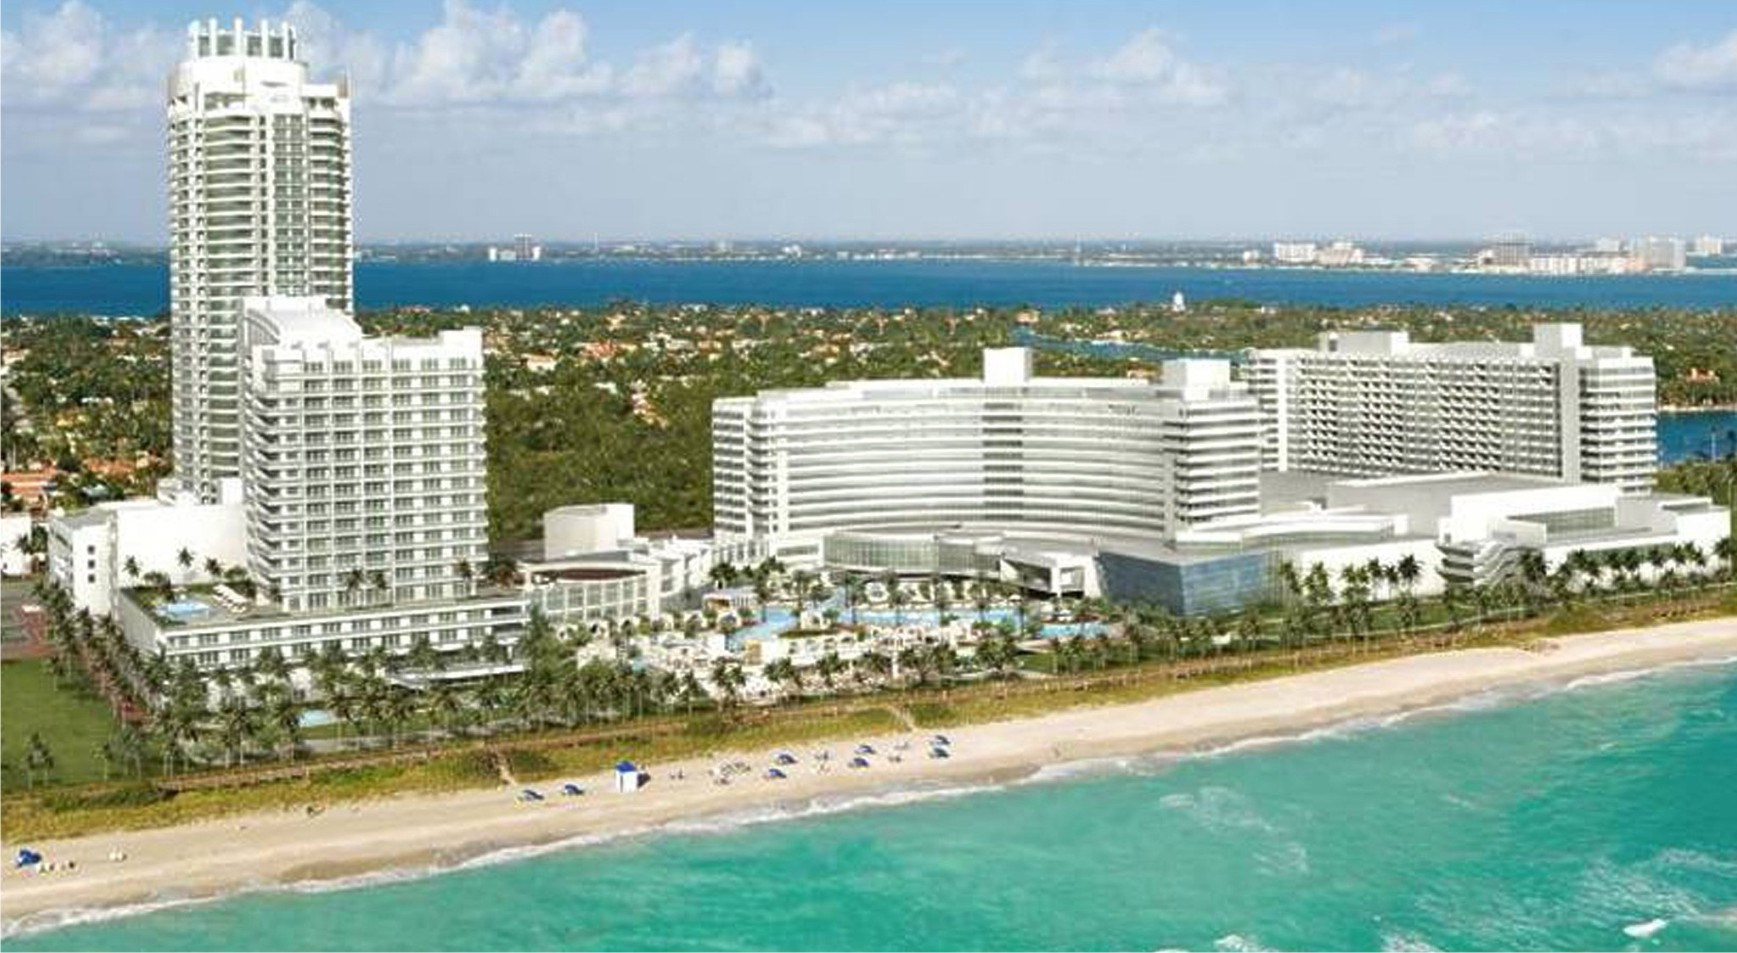 fontainebleau iii condos miami beach miami beach. Black Bedroom Furniture Sets. Home Design Ideas